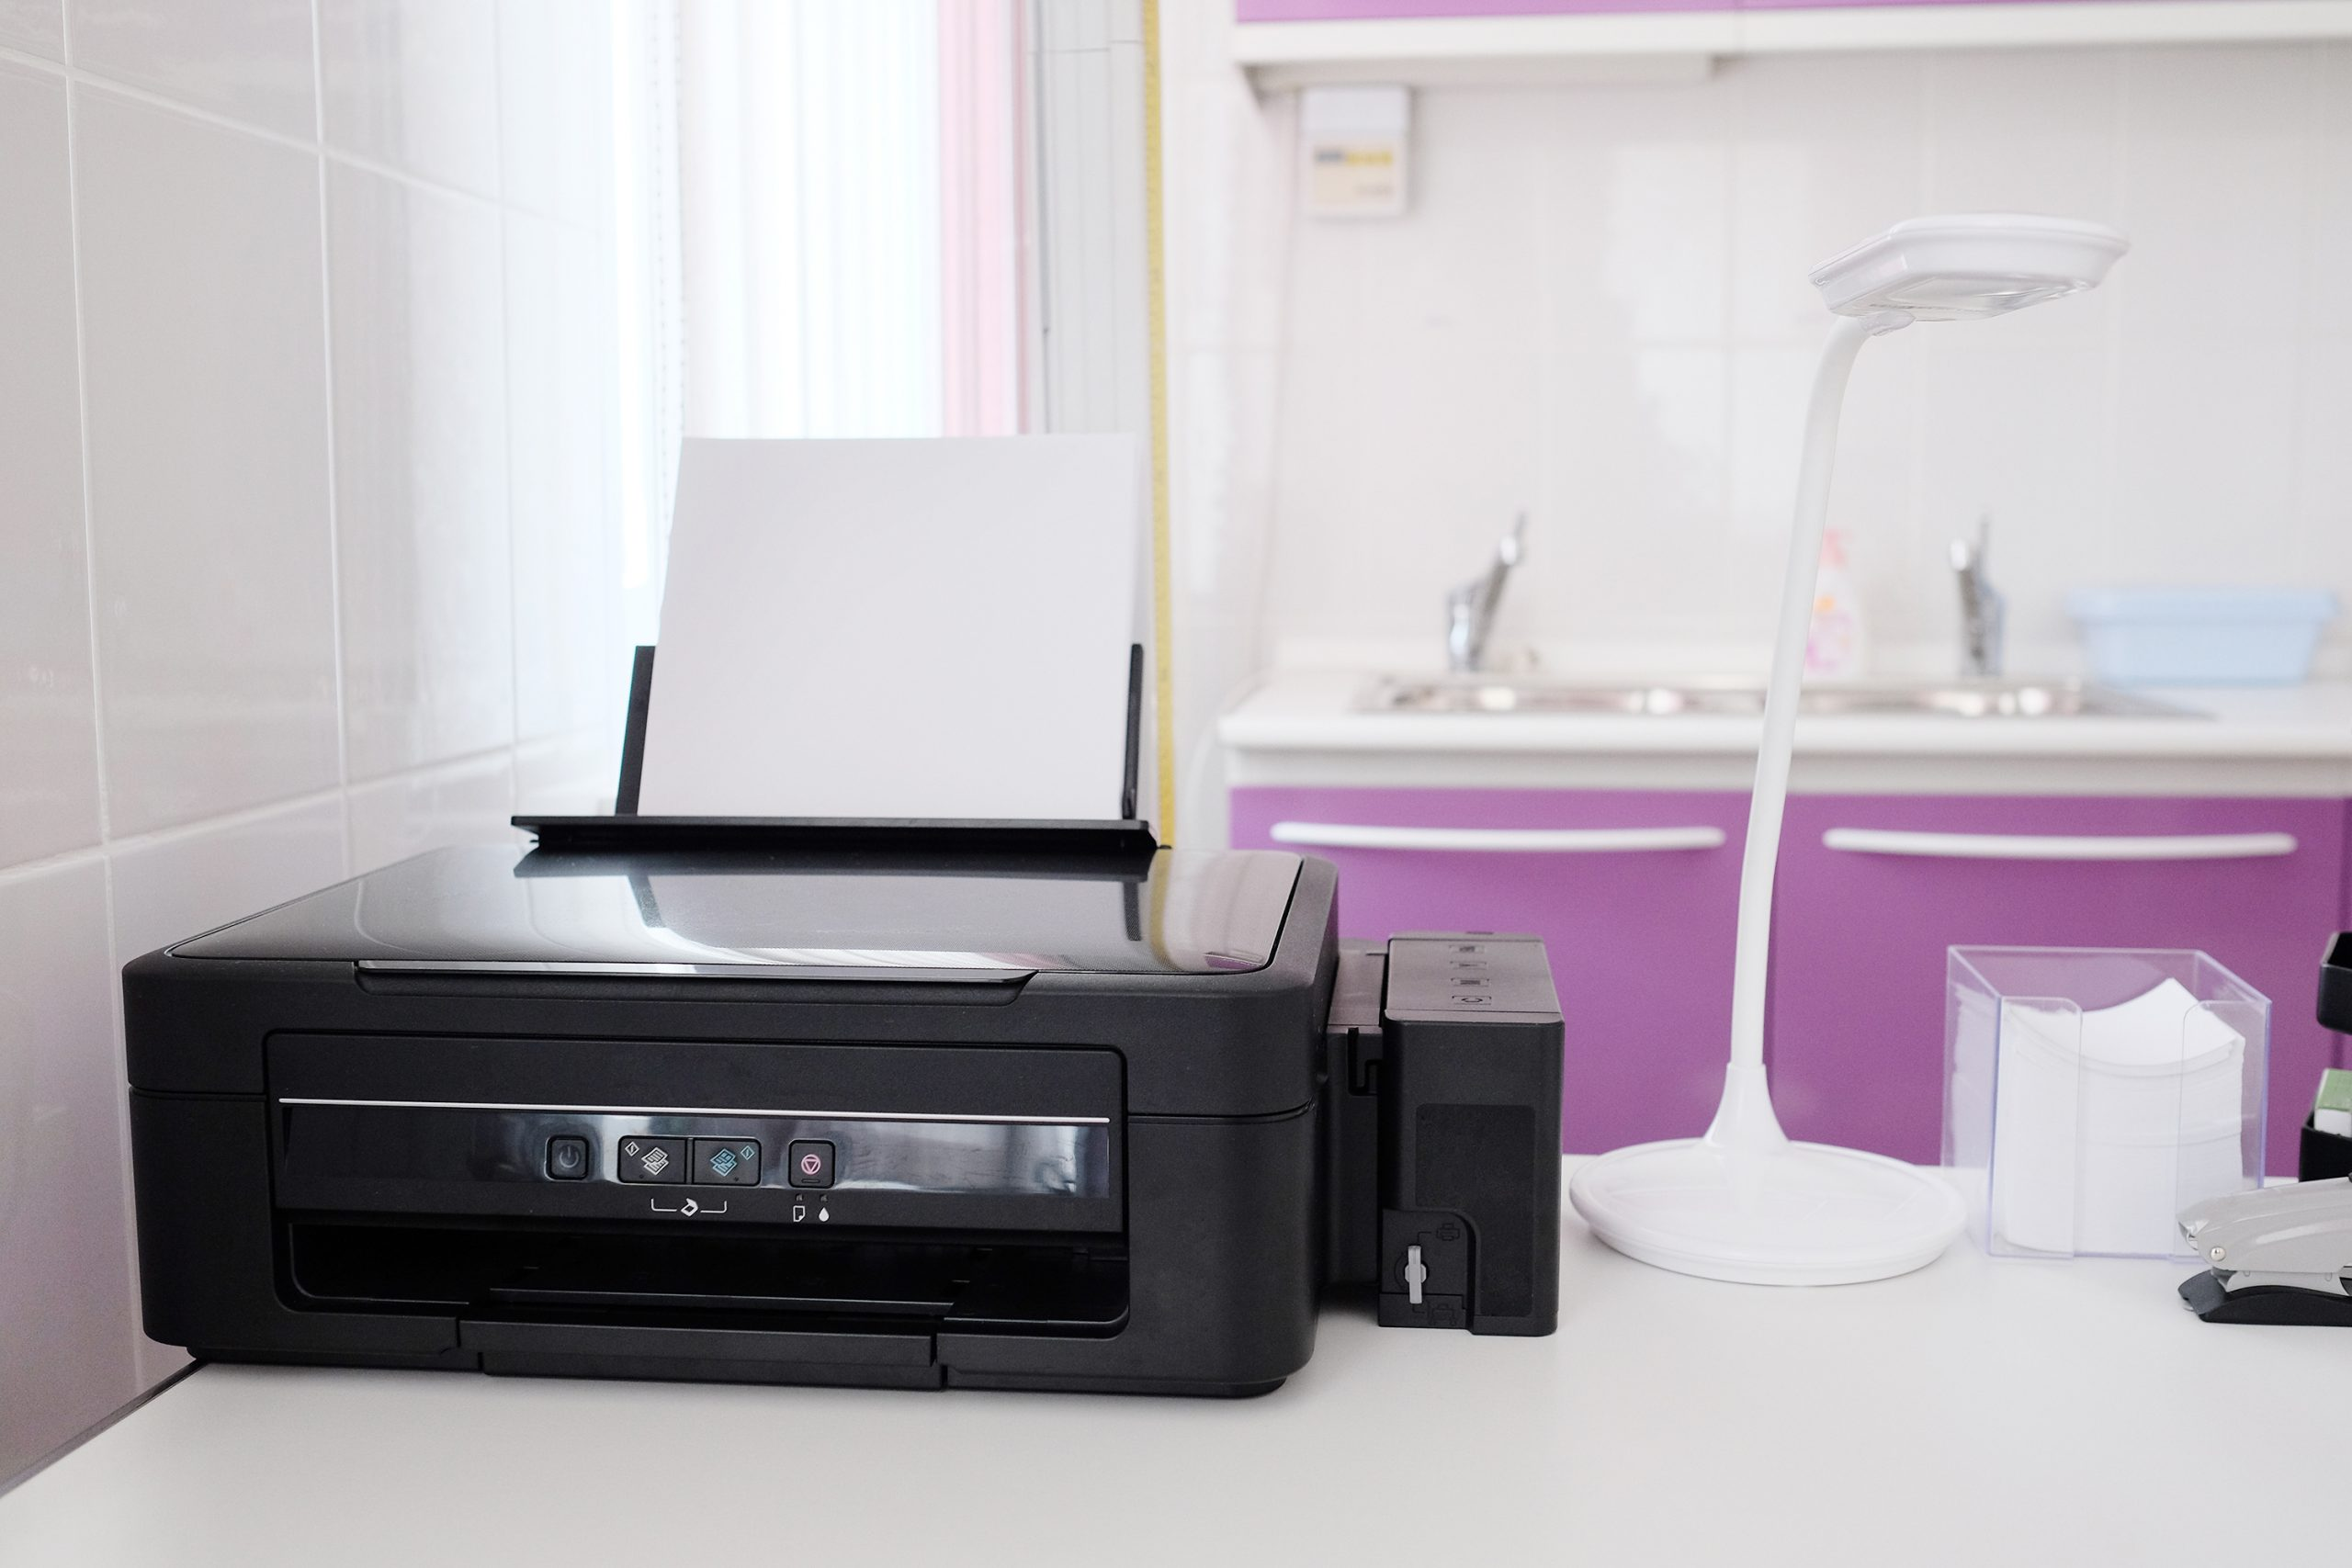 Best Airprint Printer 2020: Shopping Guide & Review